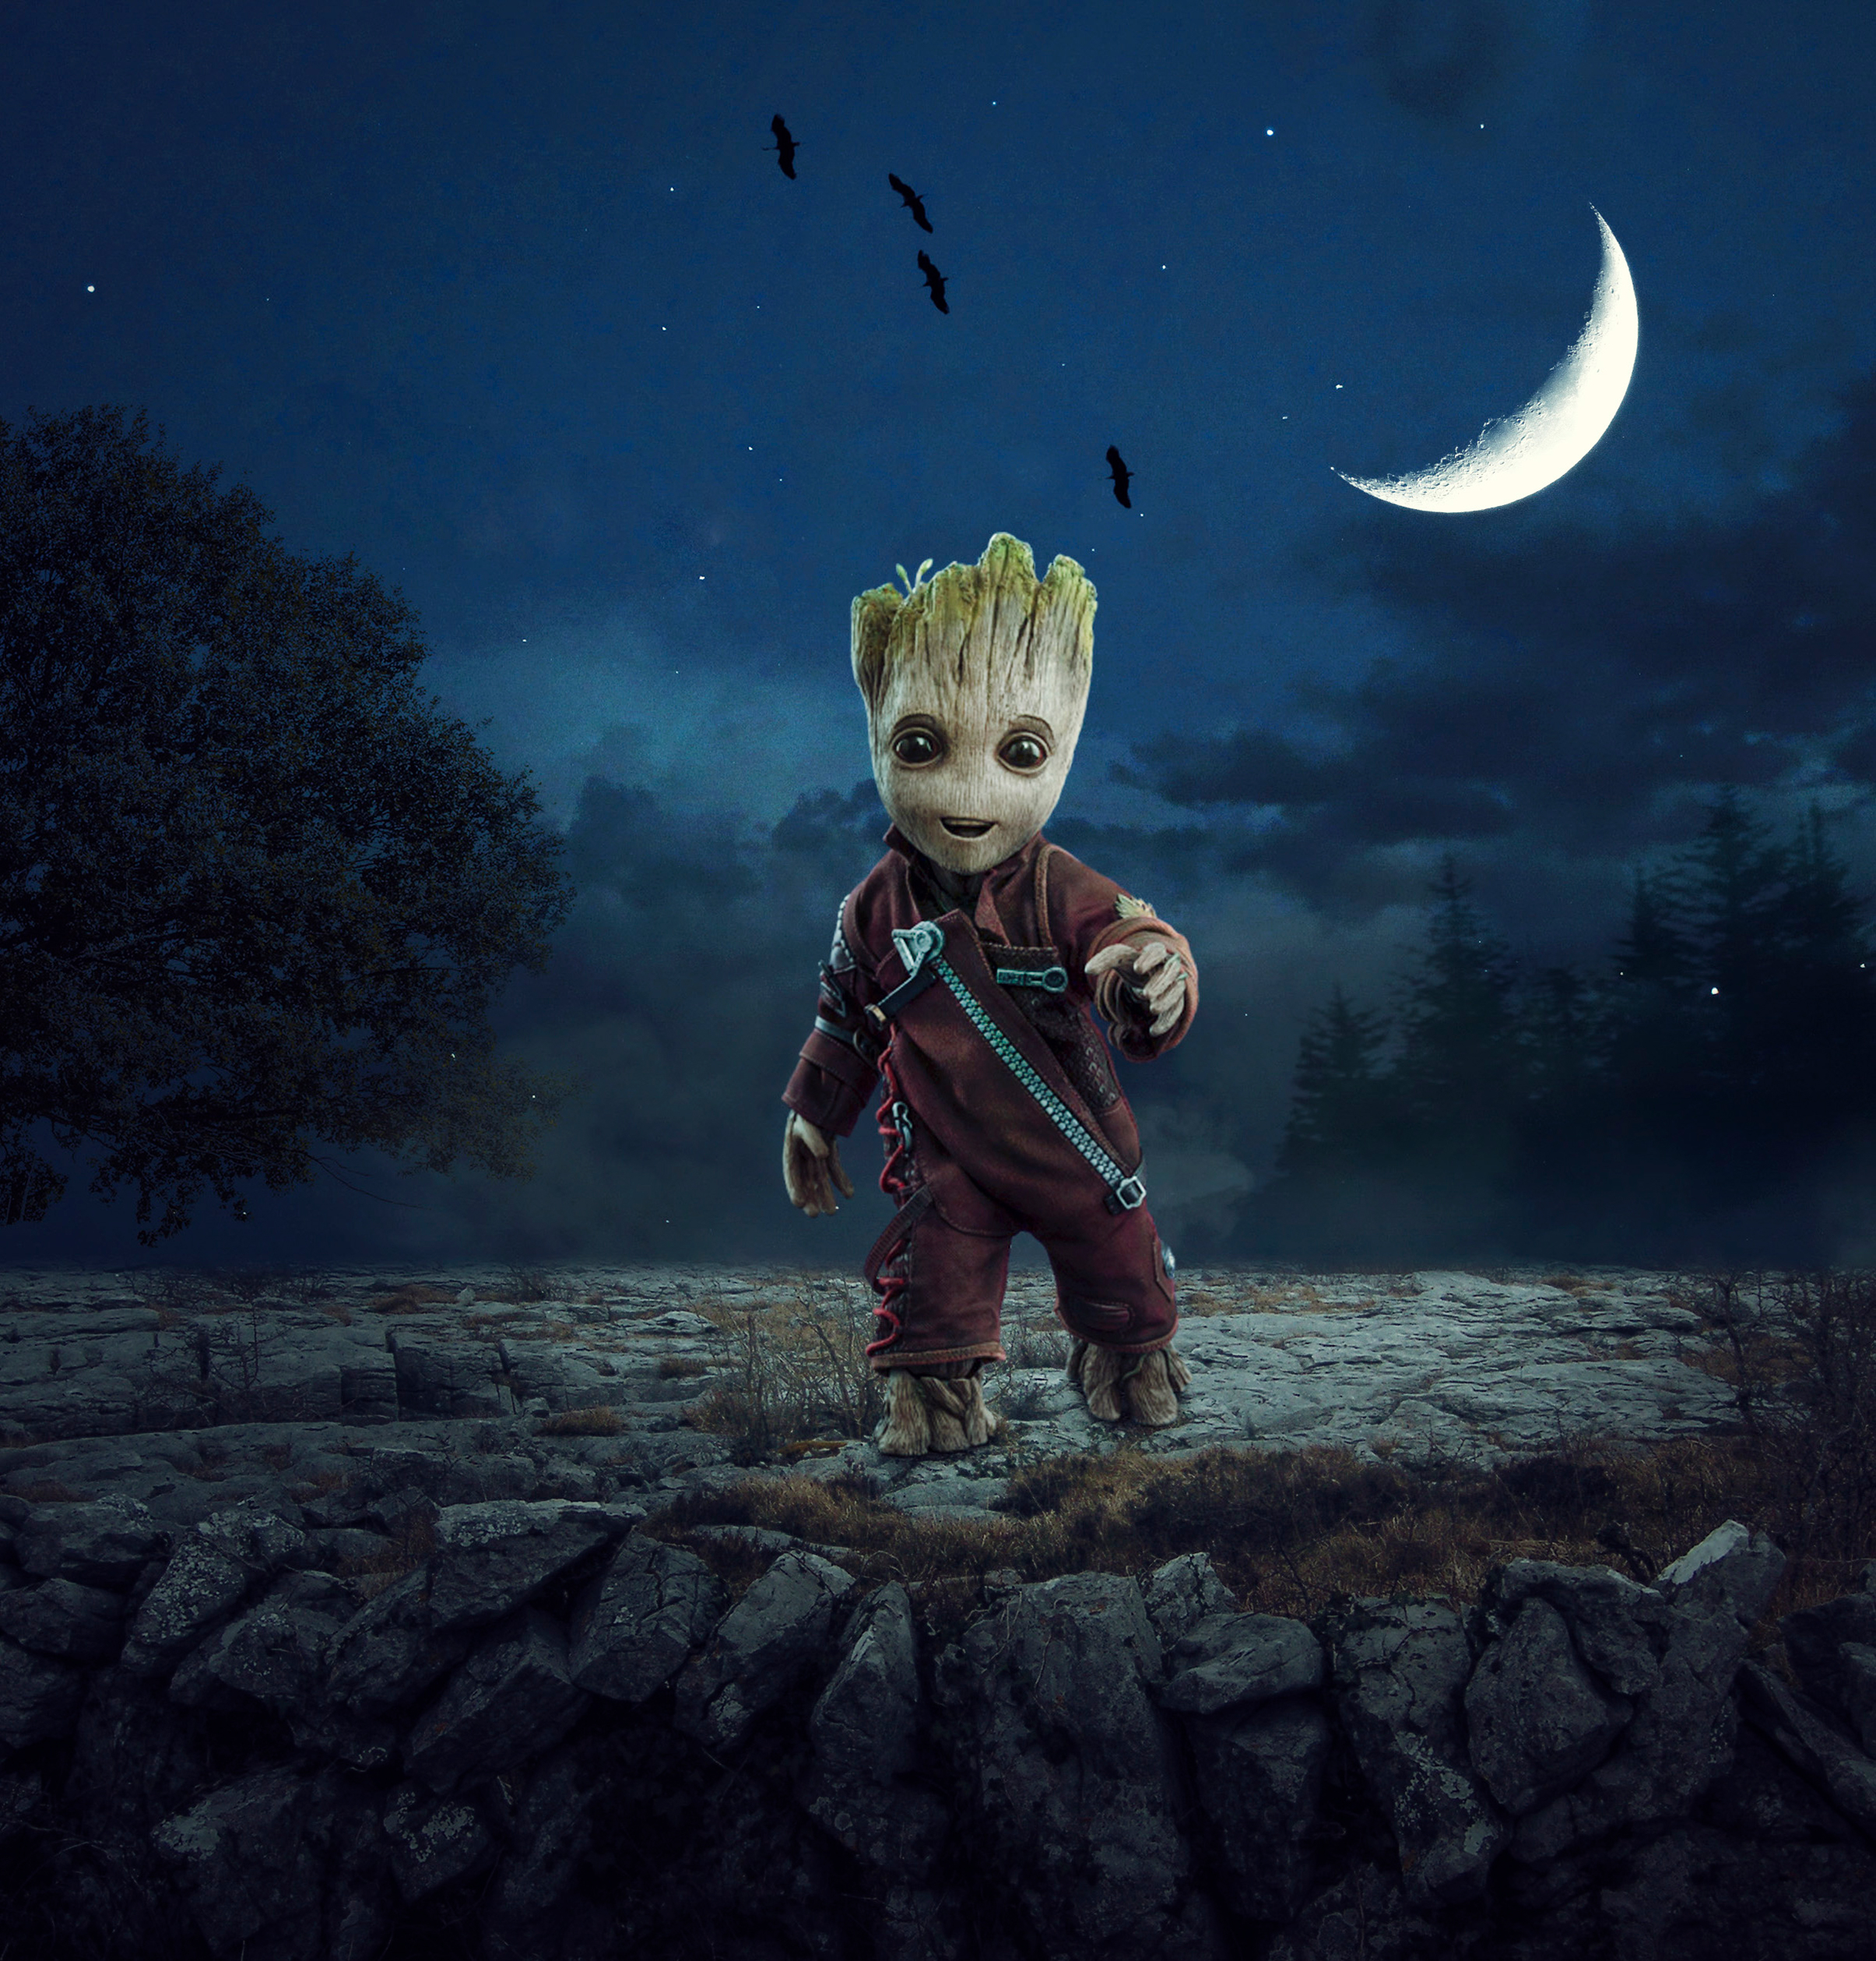 1080x2400 Baby Groot 1080x2400 Resolution Wallpaper Hd Artist 4k Wallpapers Images Photos And Background